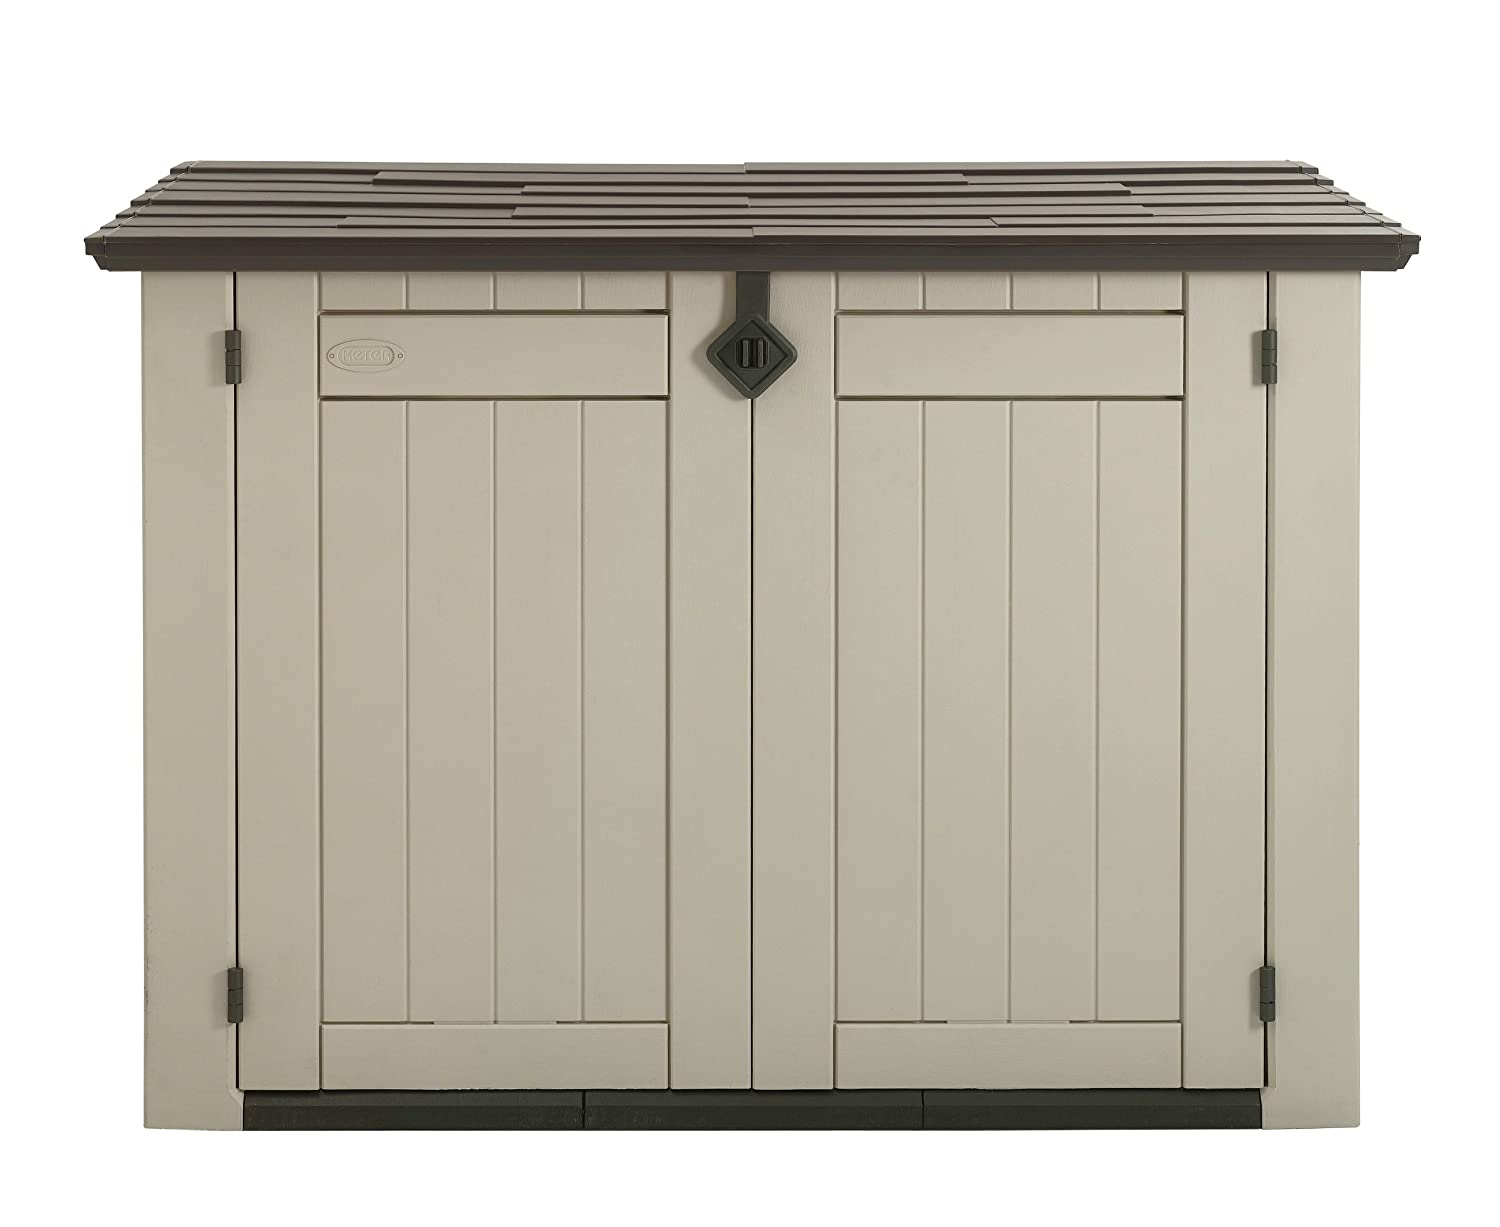 Keter Keter Keter Store it out Max beige braun 8ba720